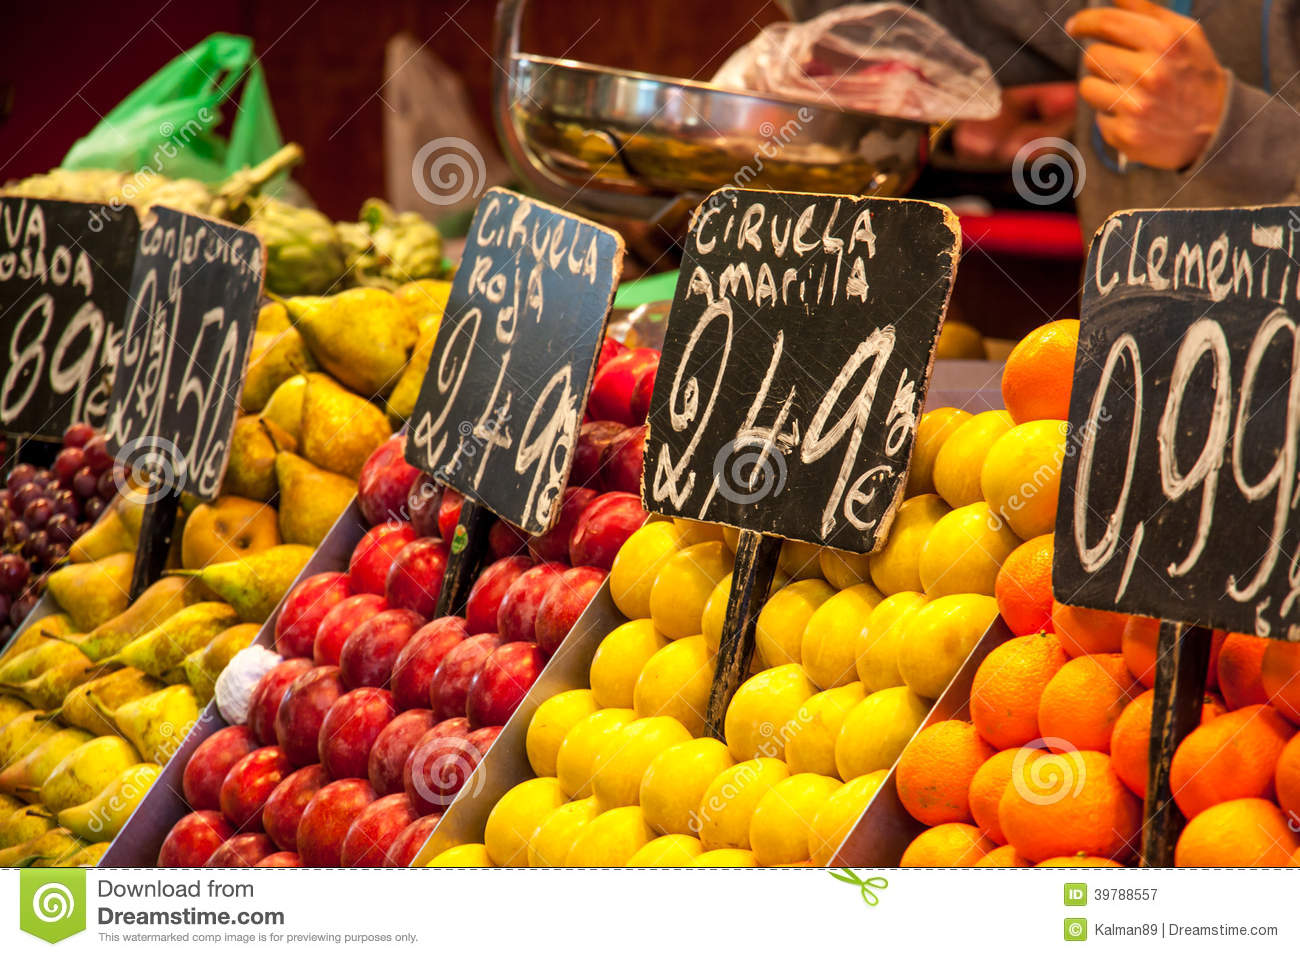 ... full of fresh fruits with price labels in market in Barcelona, Spain